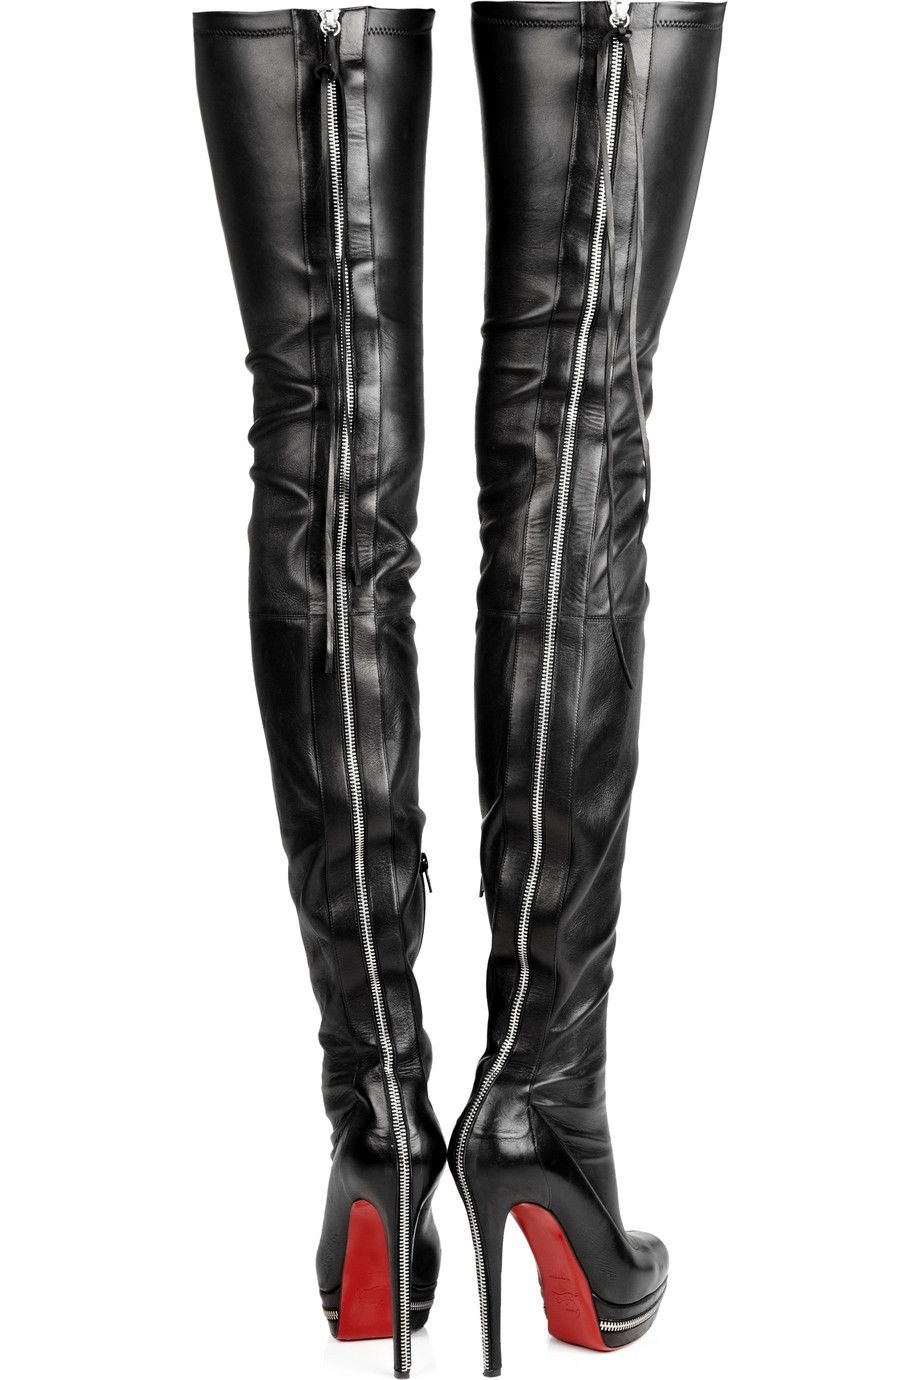 7a7a79662d6f Unique 140 leather thigh-high boots by Christian Louboutin